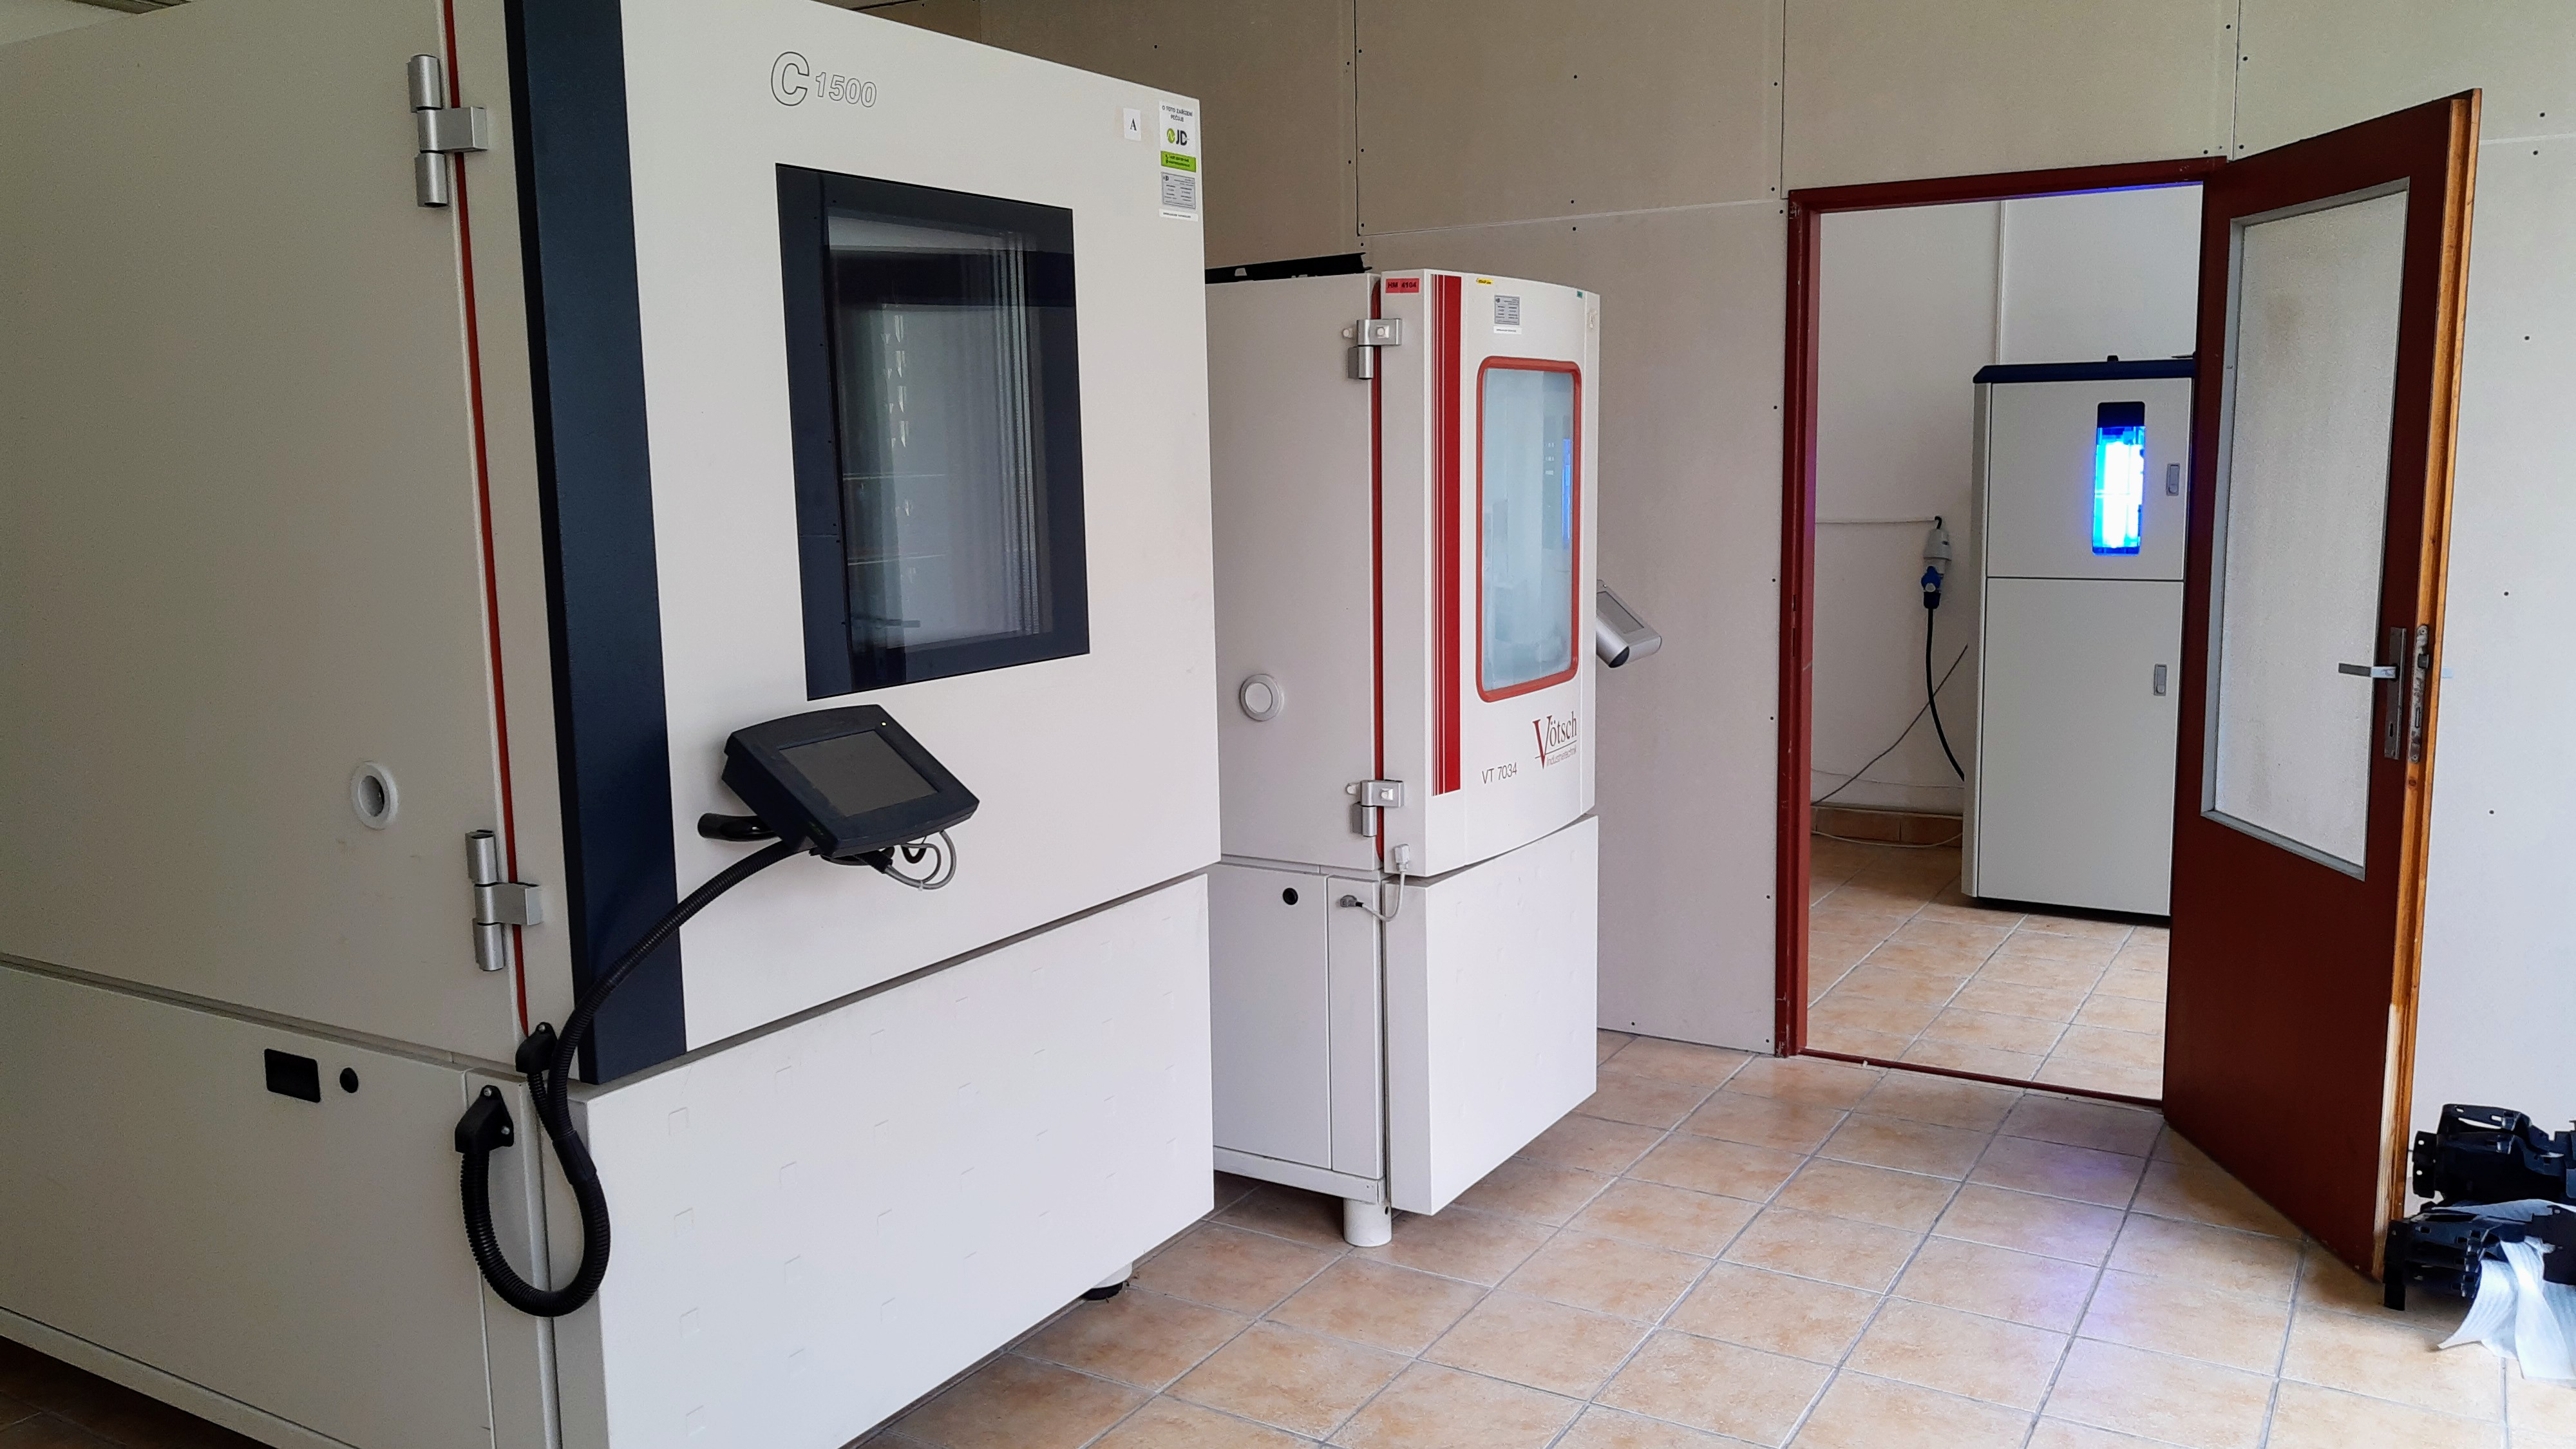 Material Testing and Certification in the accredited laboratory.